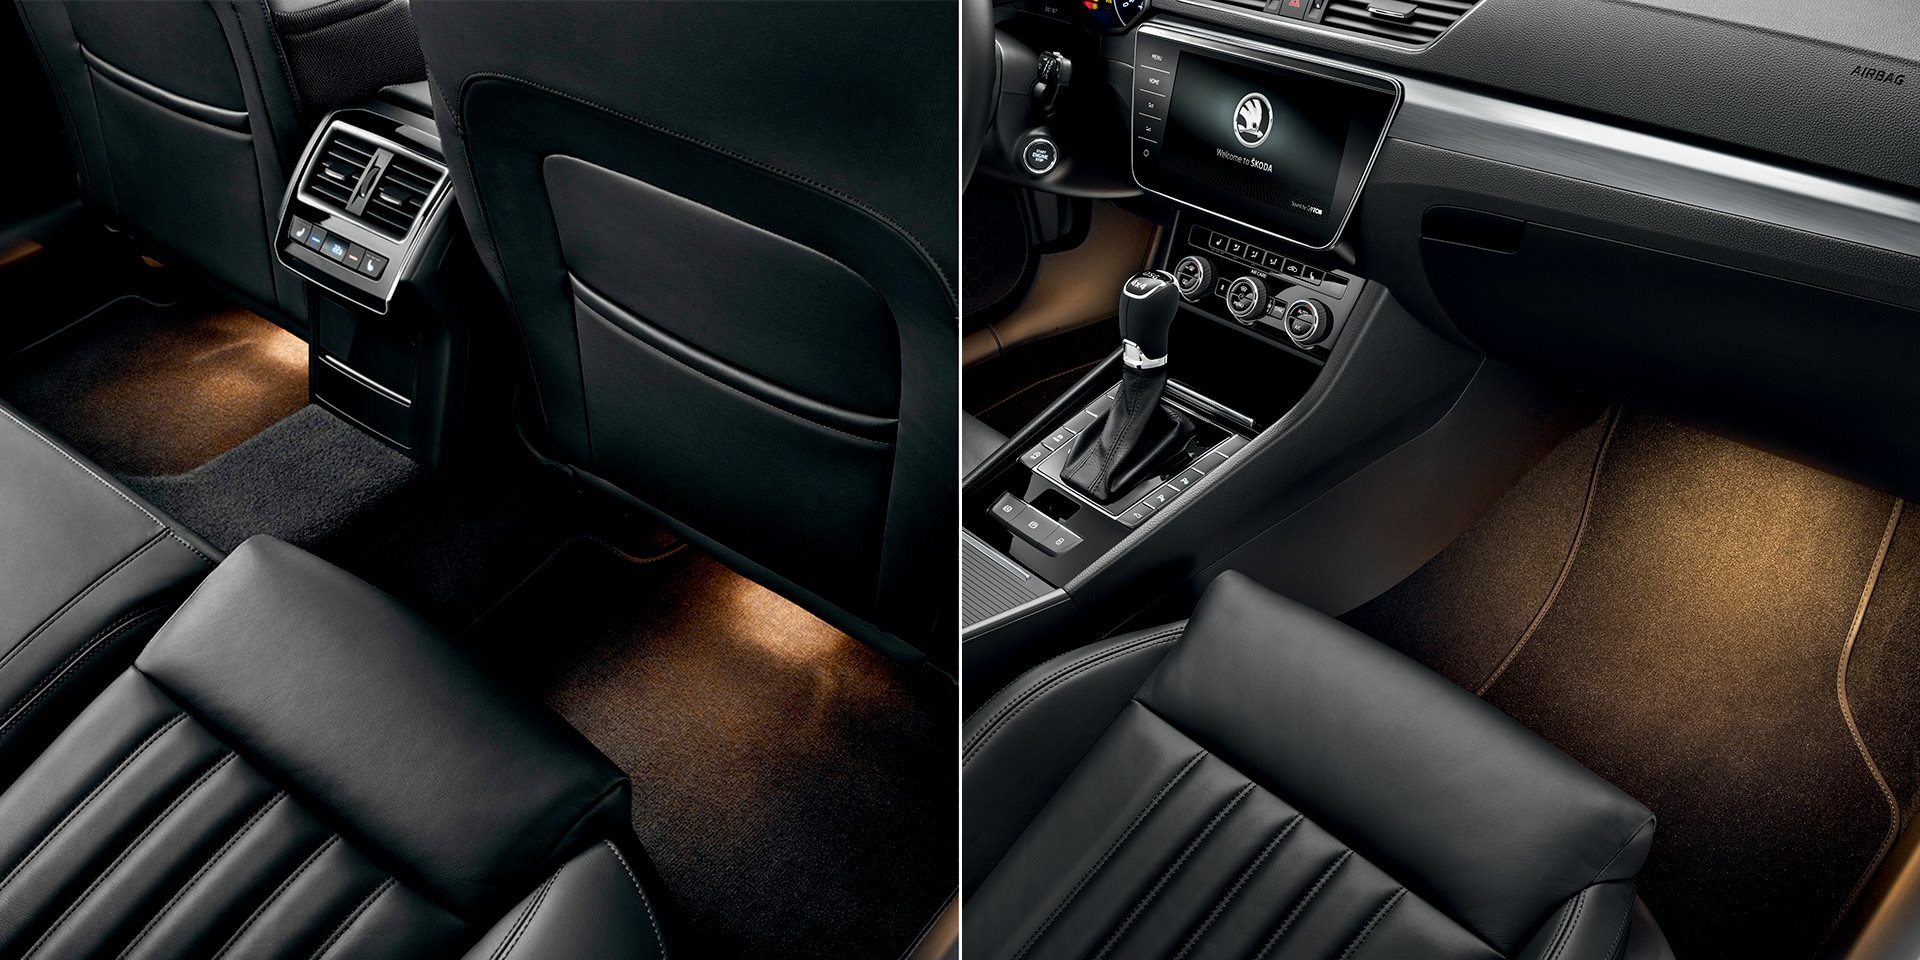 skoda-superb-m68-interior-04.004b092cc71a8639fa1779f5997408d4.fill-1920x960